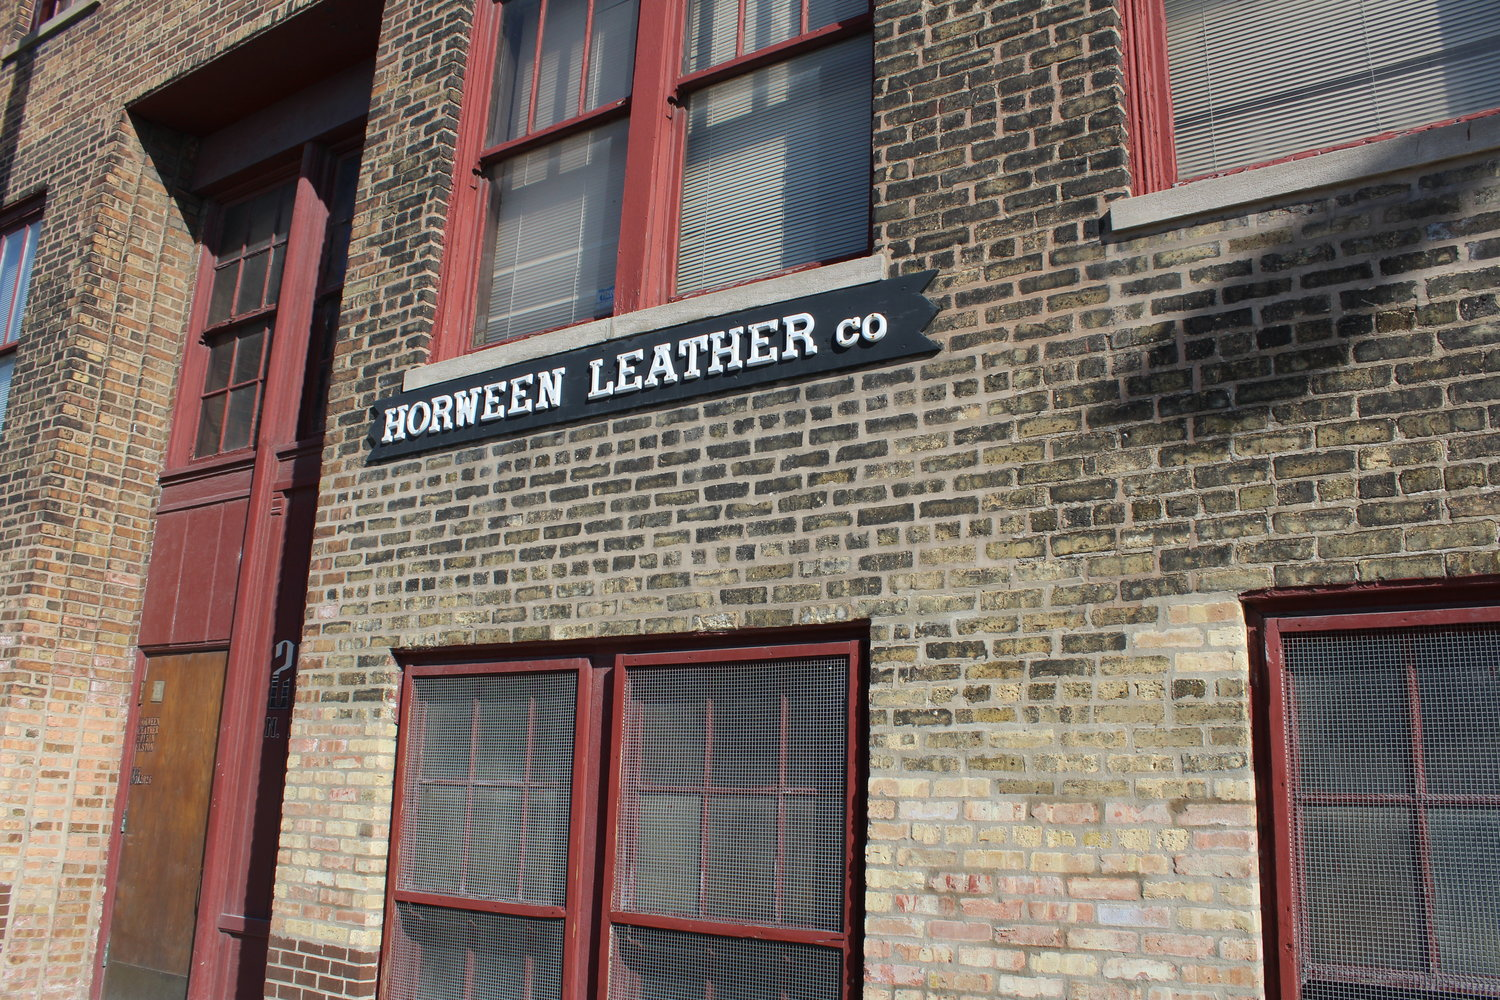 The brick and red-accented building front of Horween Leather Co.